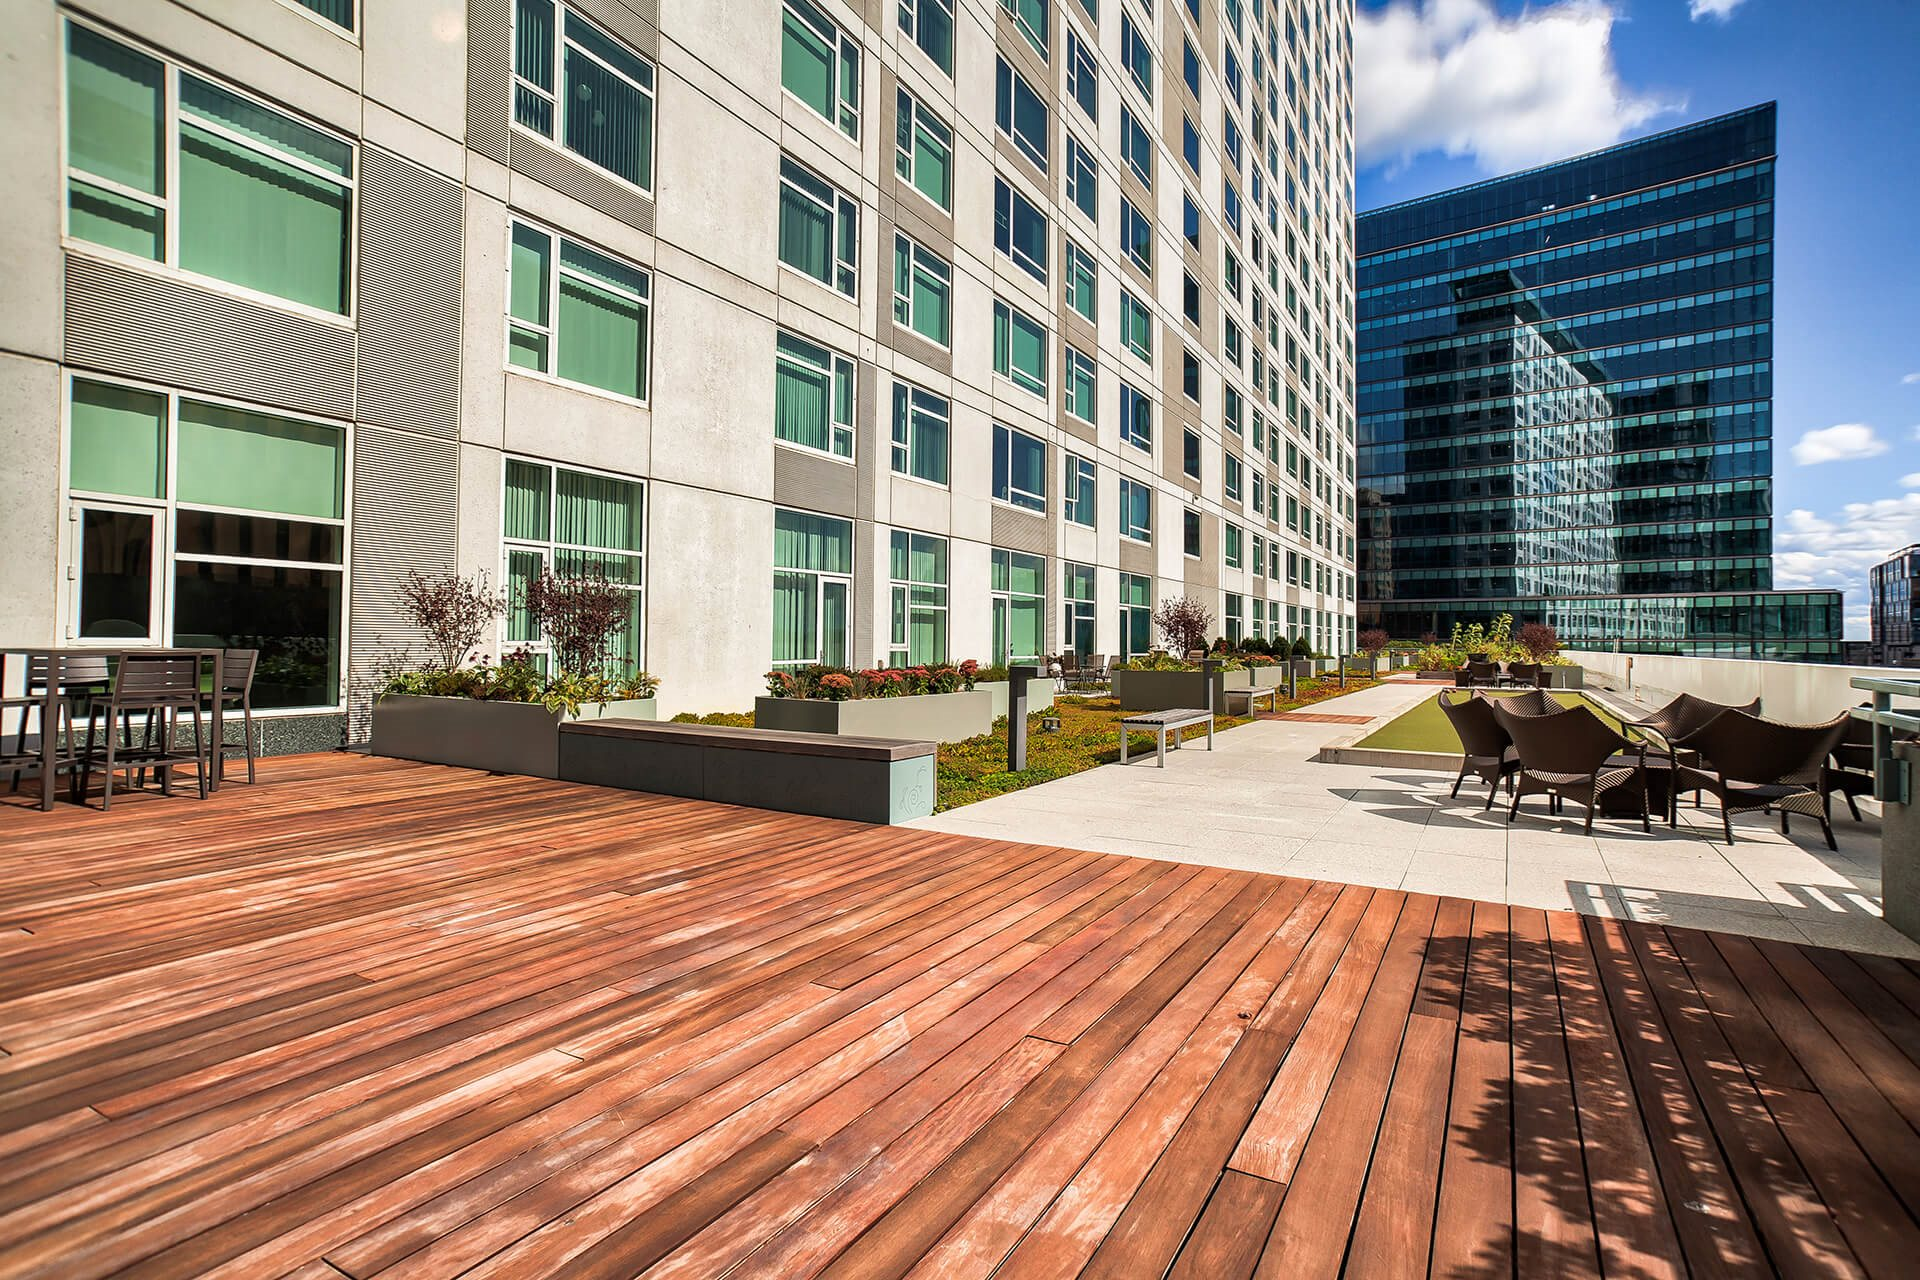 Bocce ball court at Waterside Place by Windsor, 02210, MA